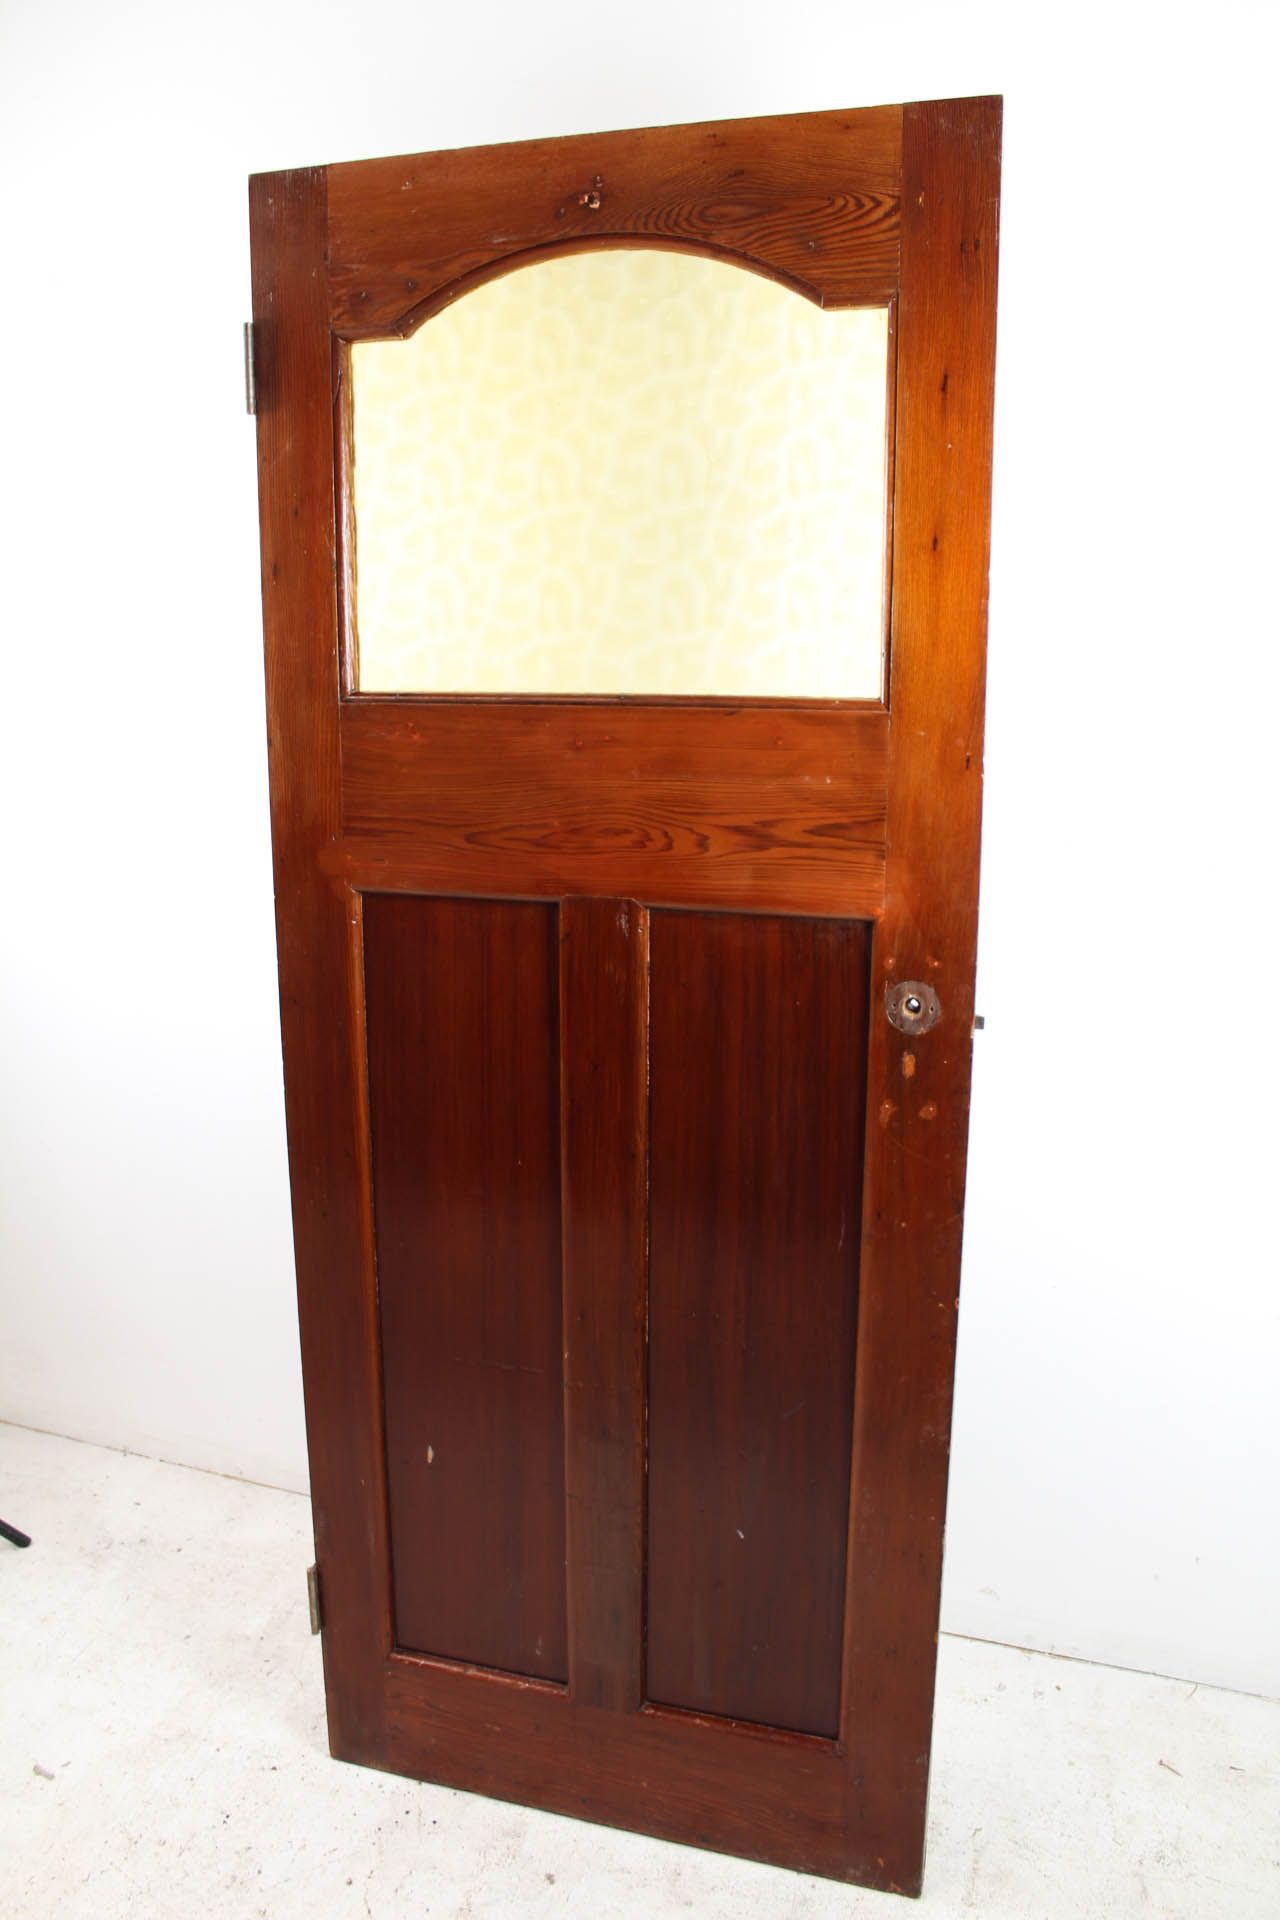 Arched Top Glass Feature Doors Glass, Doors, Timber framing